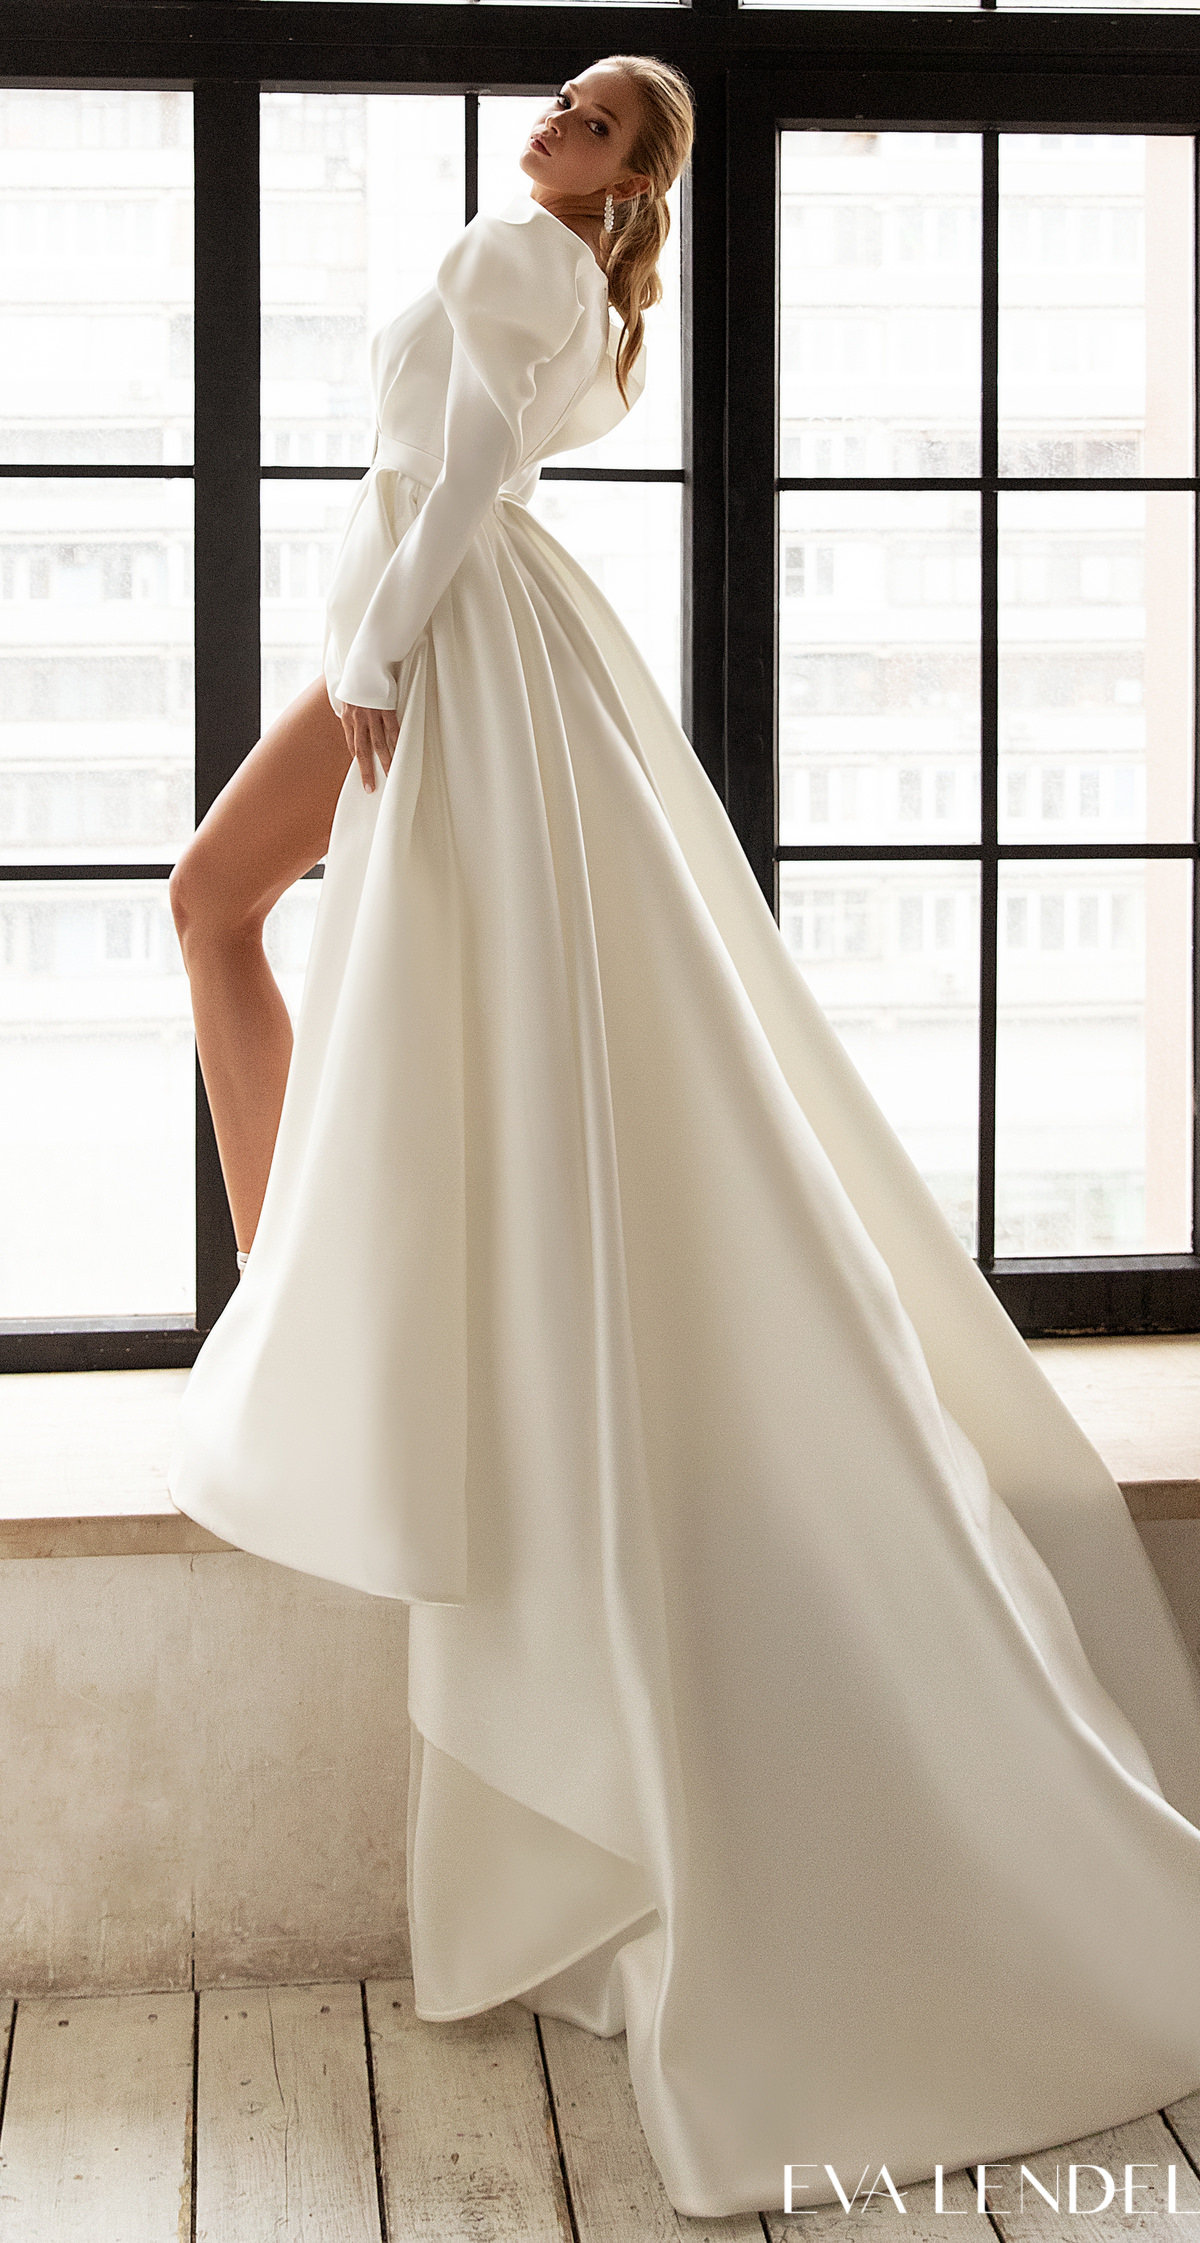 Eva Lendel Wedding Dresses 2021- Less is More Collection -Tayra